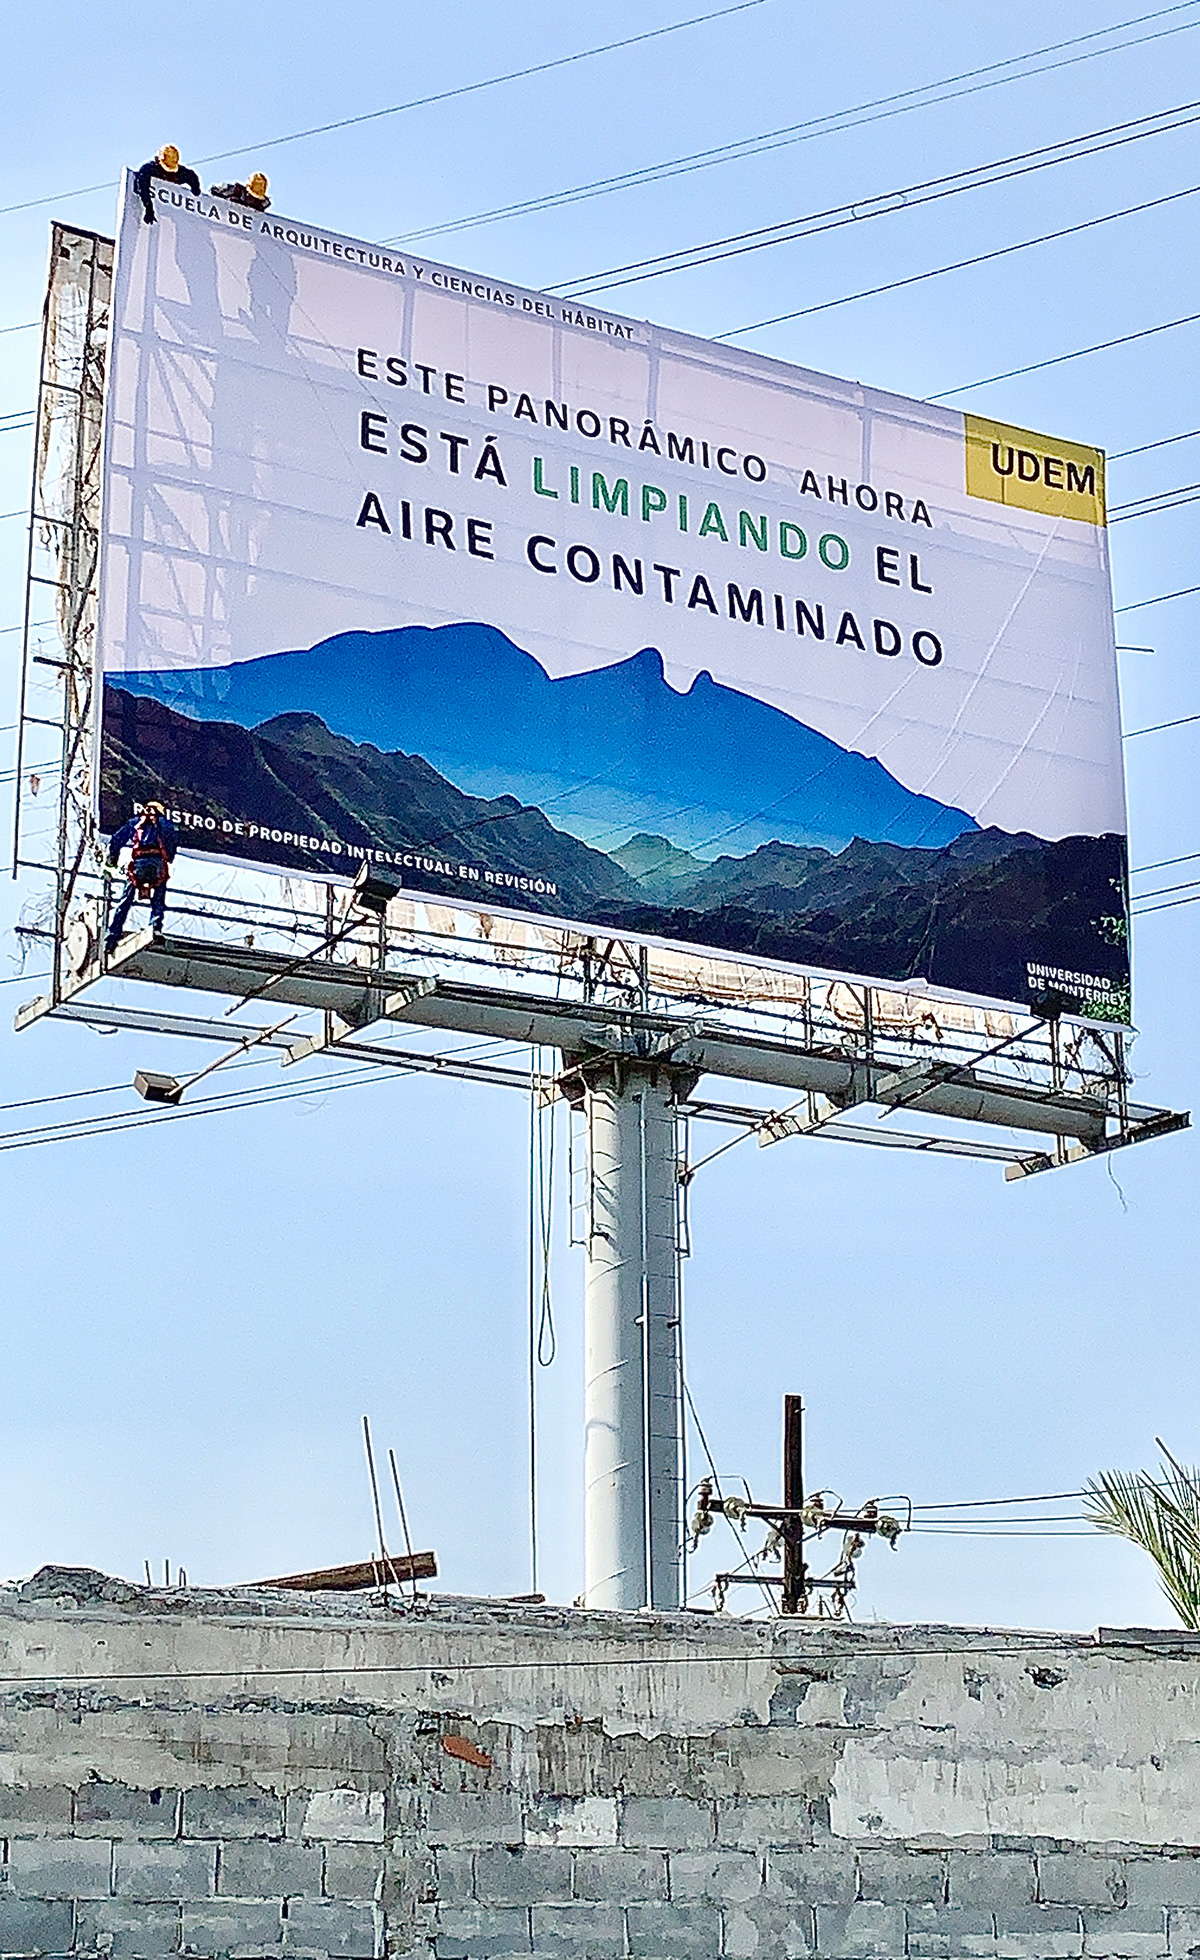 The Smog Eating Billboard in Mexico is designed by students at UDEM University and Daan Roosegaarde | The Smog Free Project | Daan Roosegaarde | STIRworld